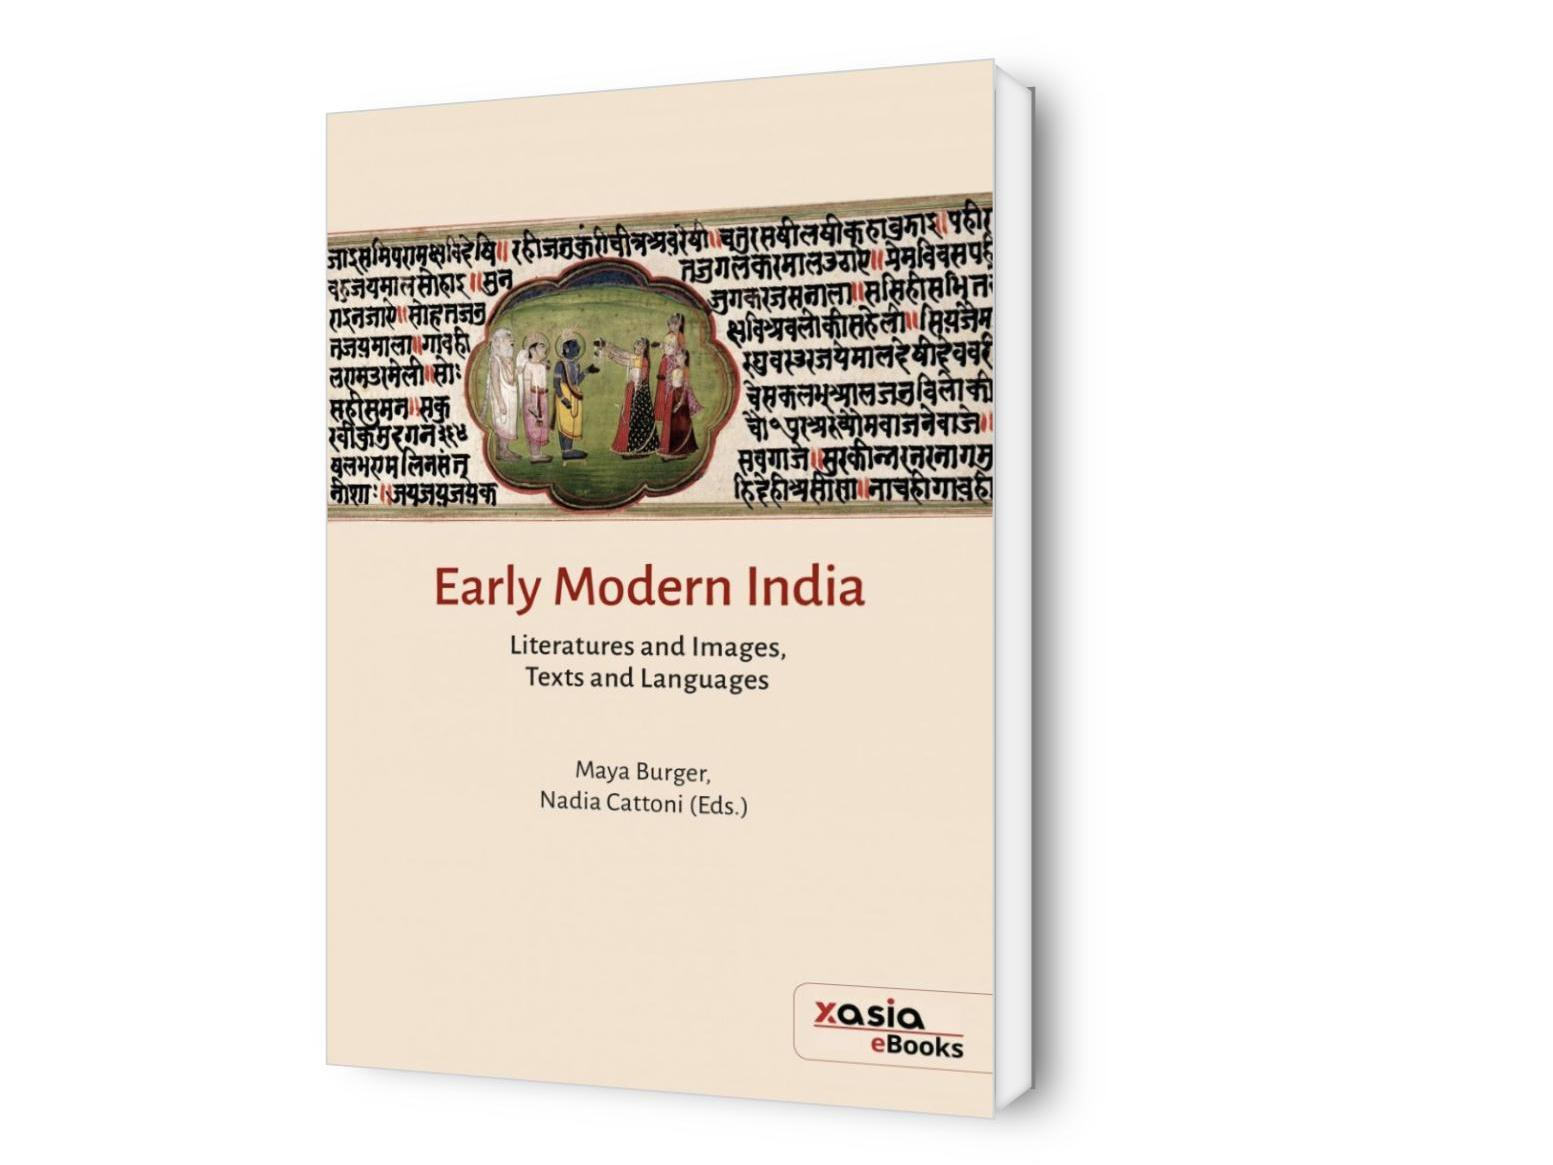 Early Modern India, Literatures and Images, Texts and Languages